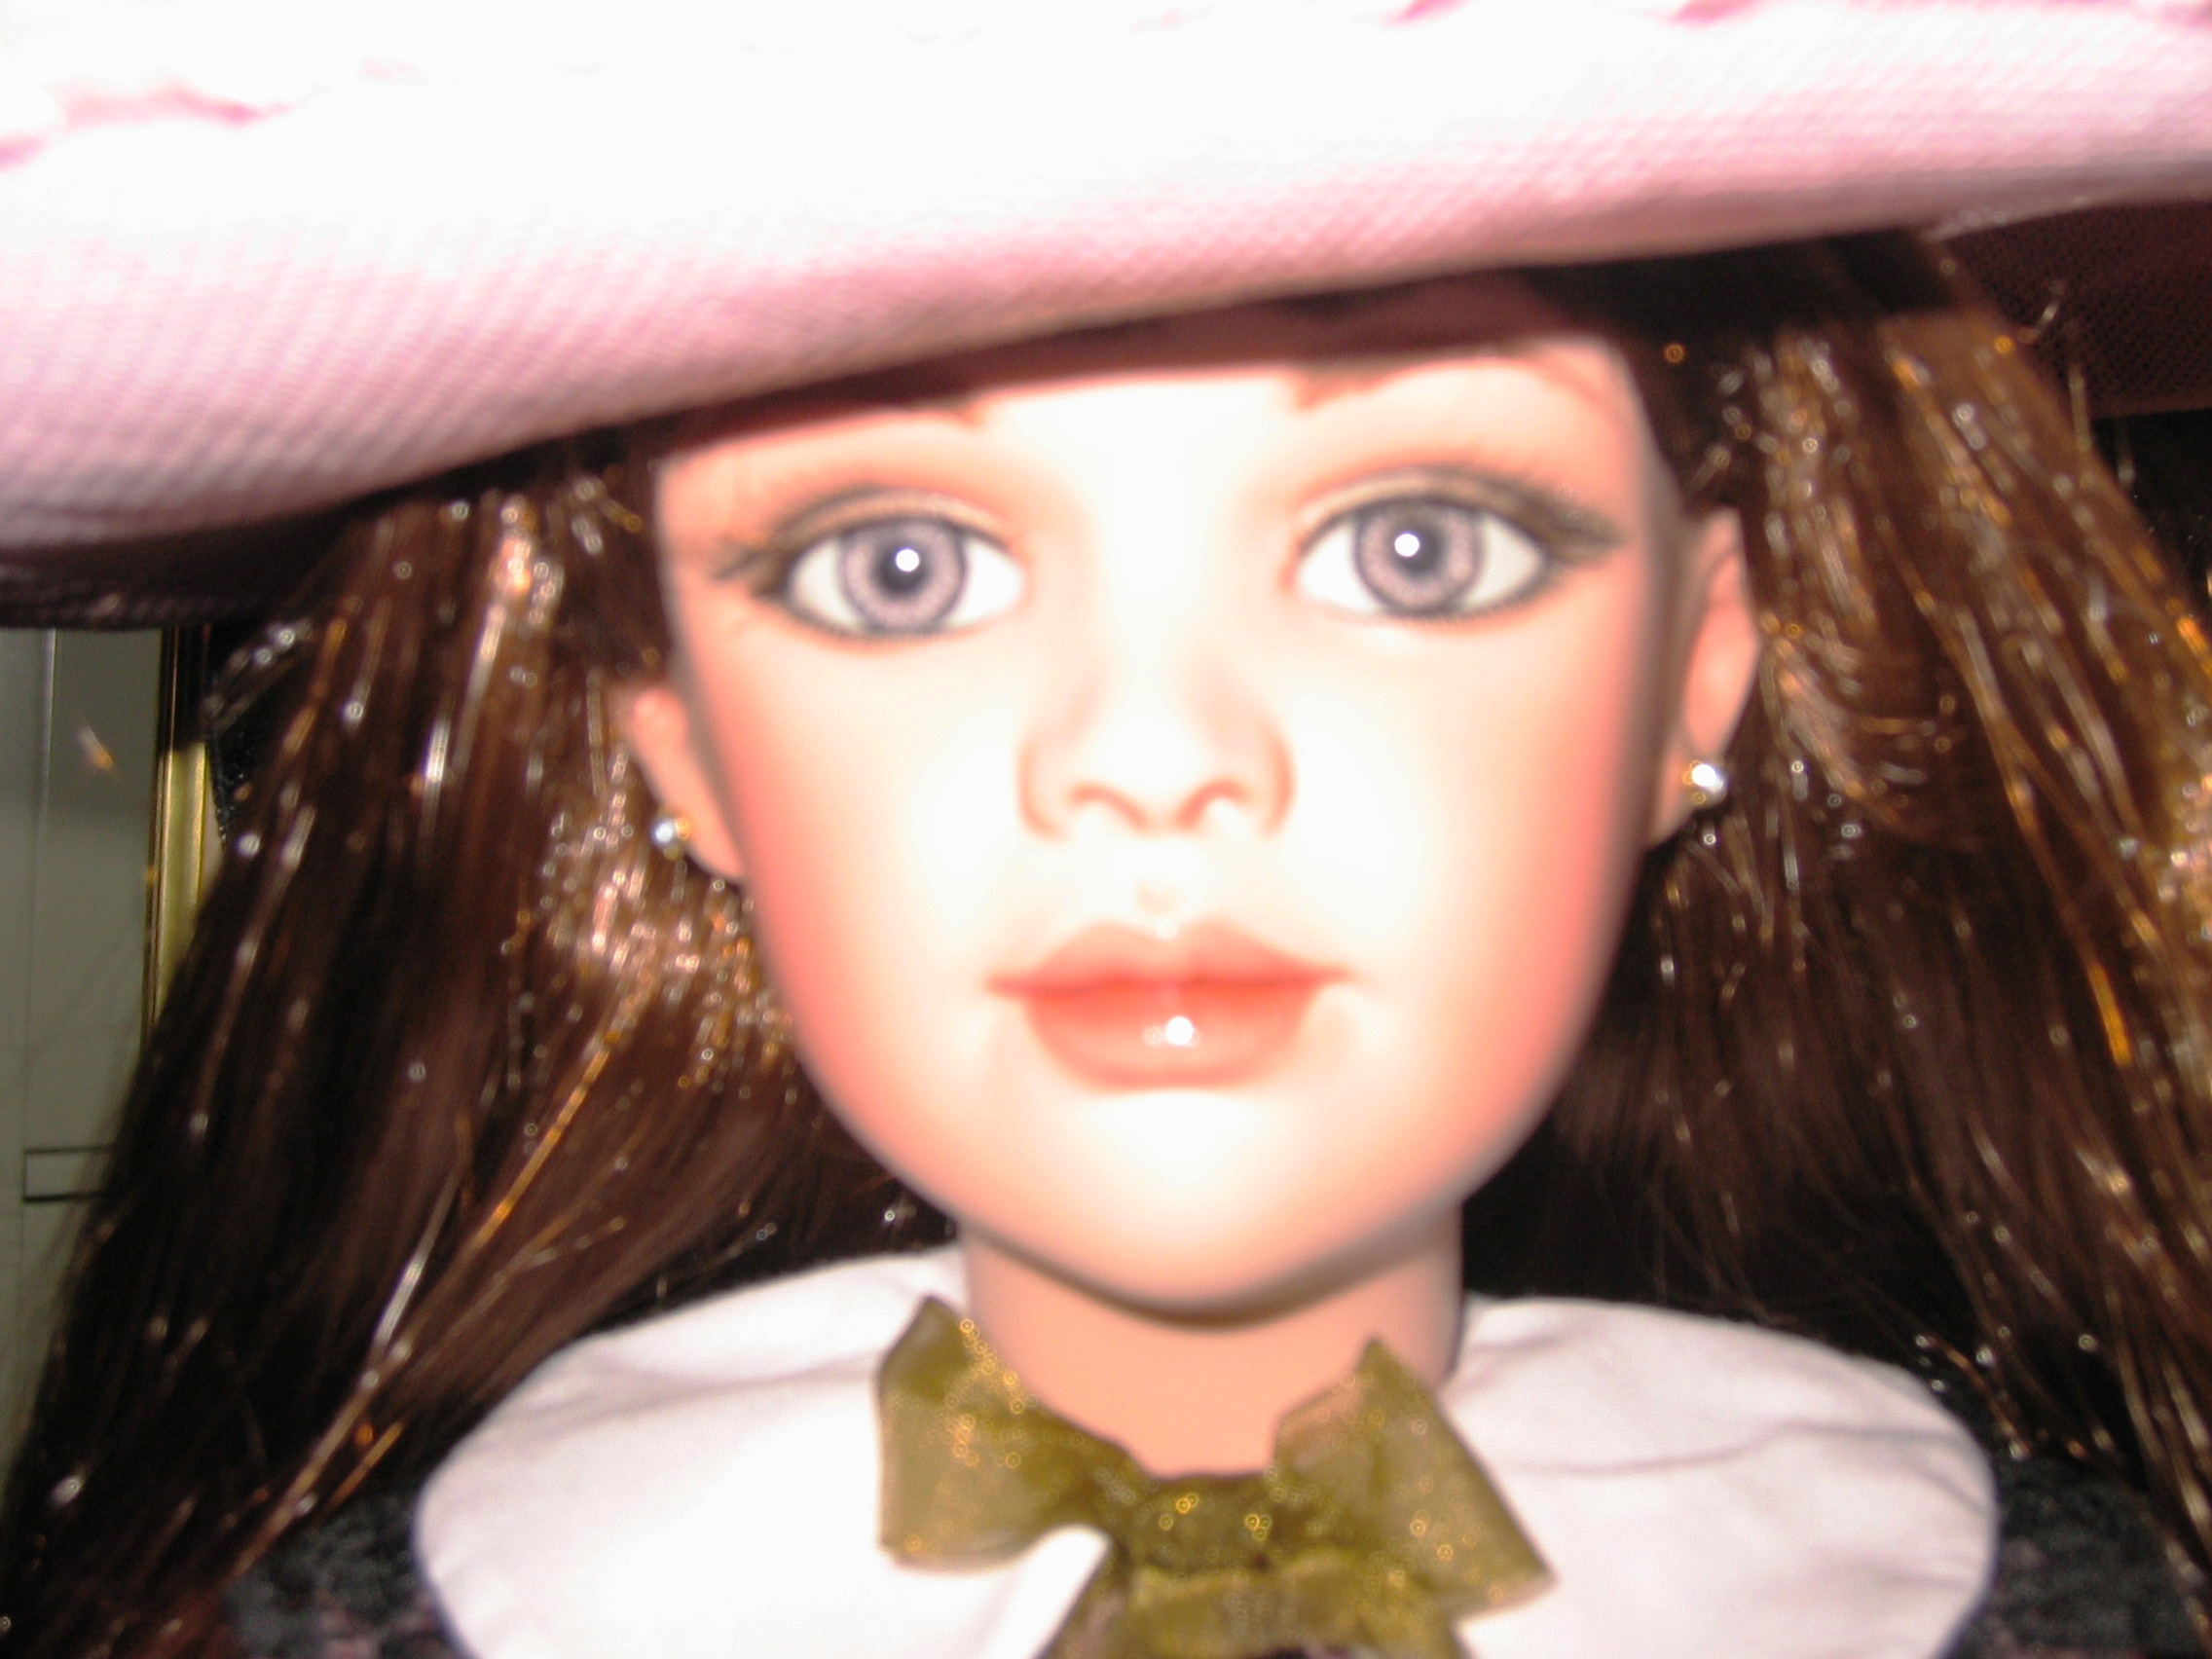 doll writer site here s a link to a basic history of dolls